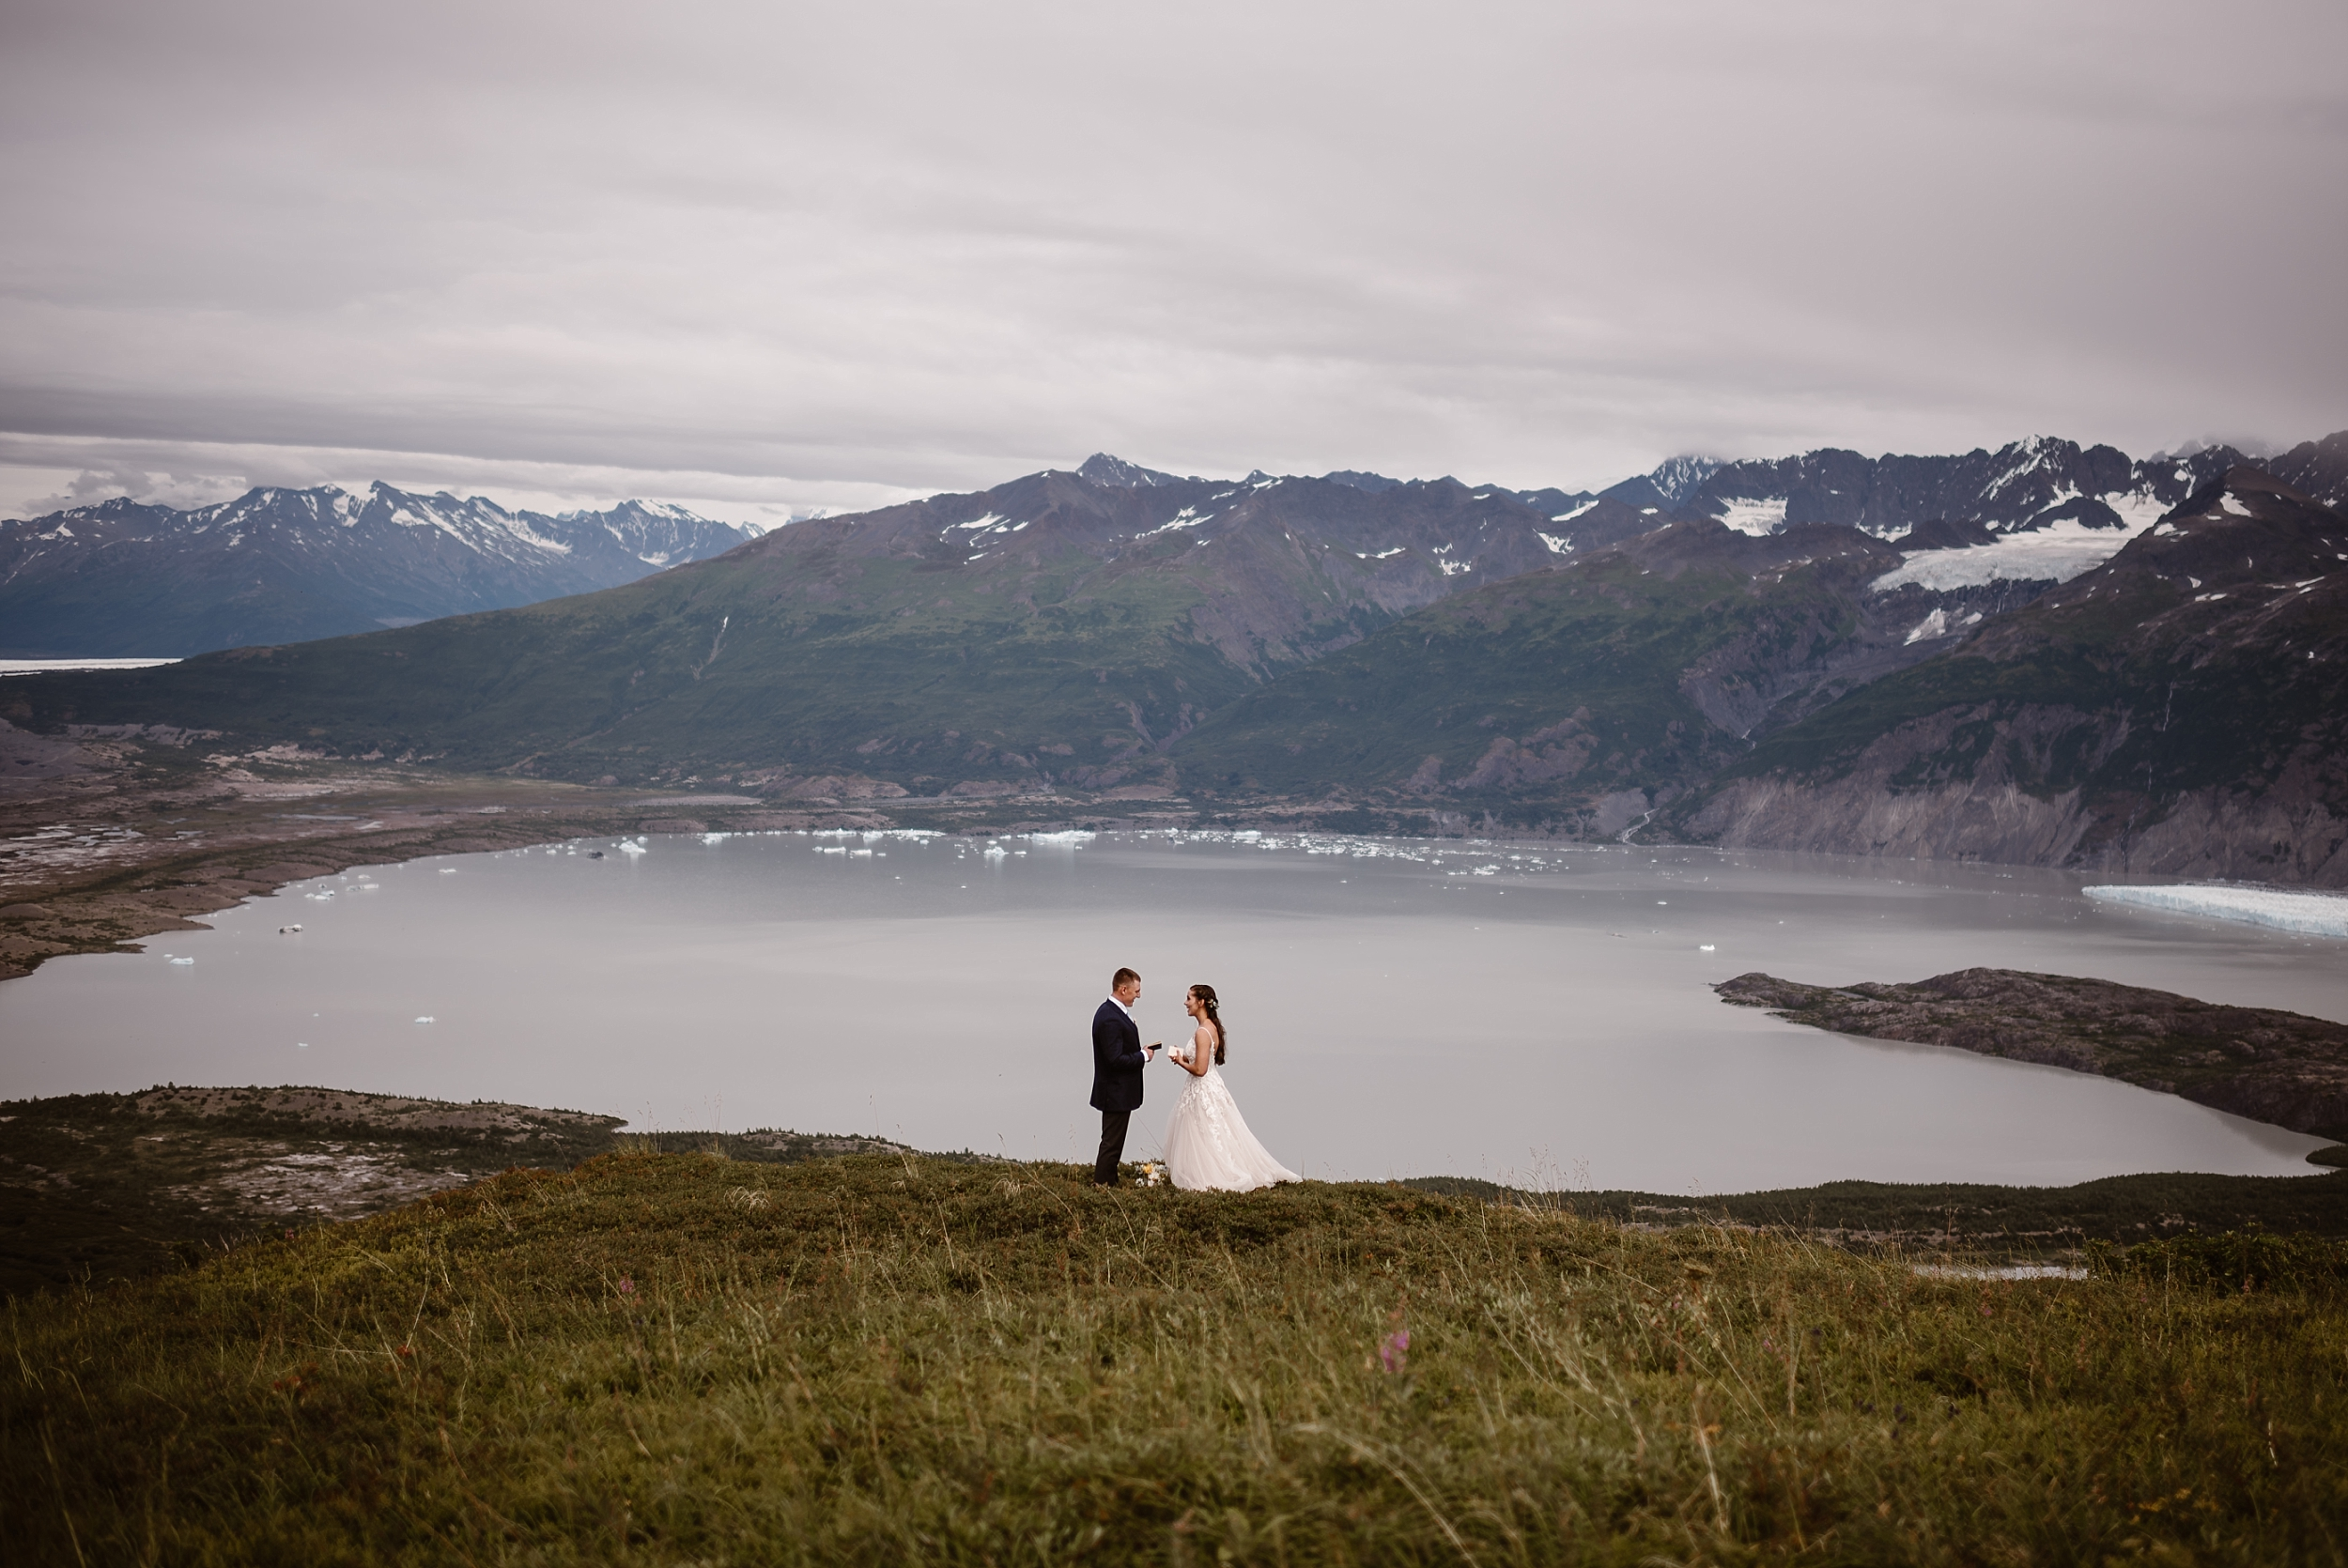 Jordyn and Connor stand in a grassy field above a glacial lake with snowy mountain peaks in the distance. The two read their vows to each other during their alaska destination wedding in this photo captured by Adventure Instead, an elopement photographer.